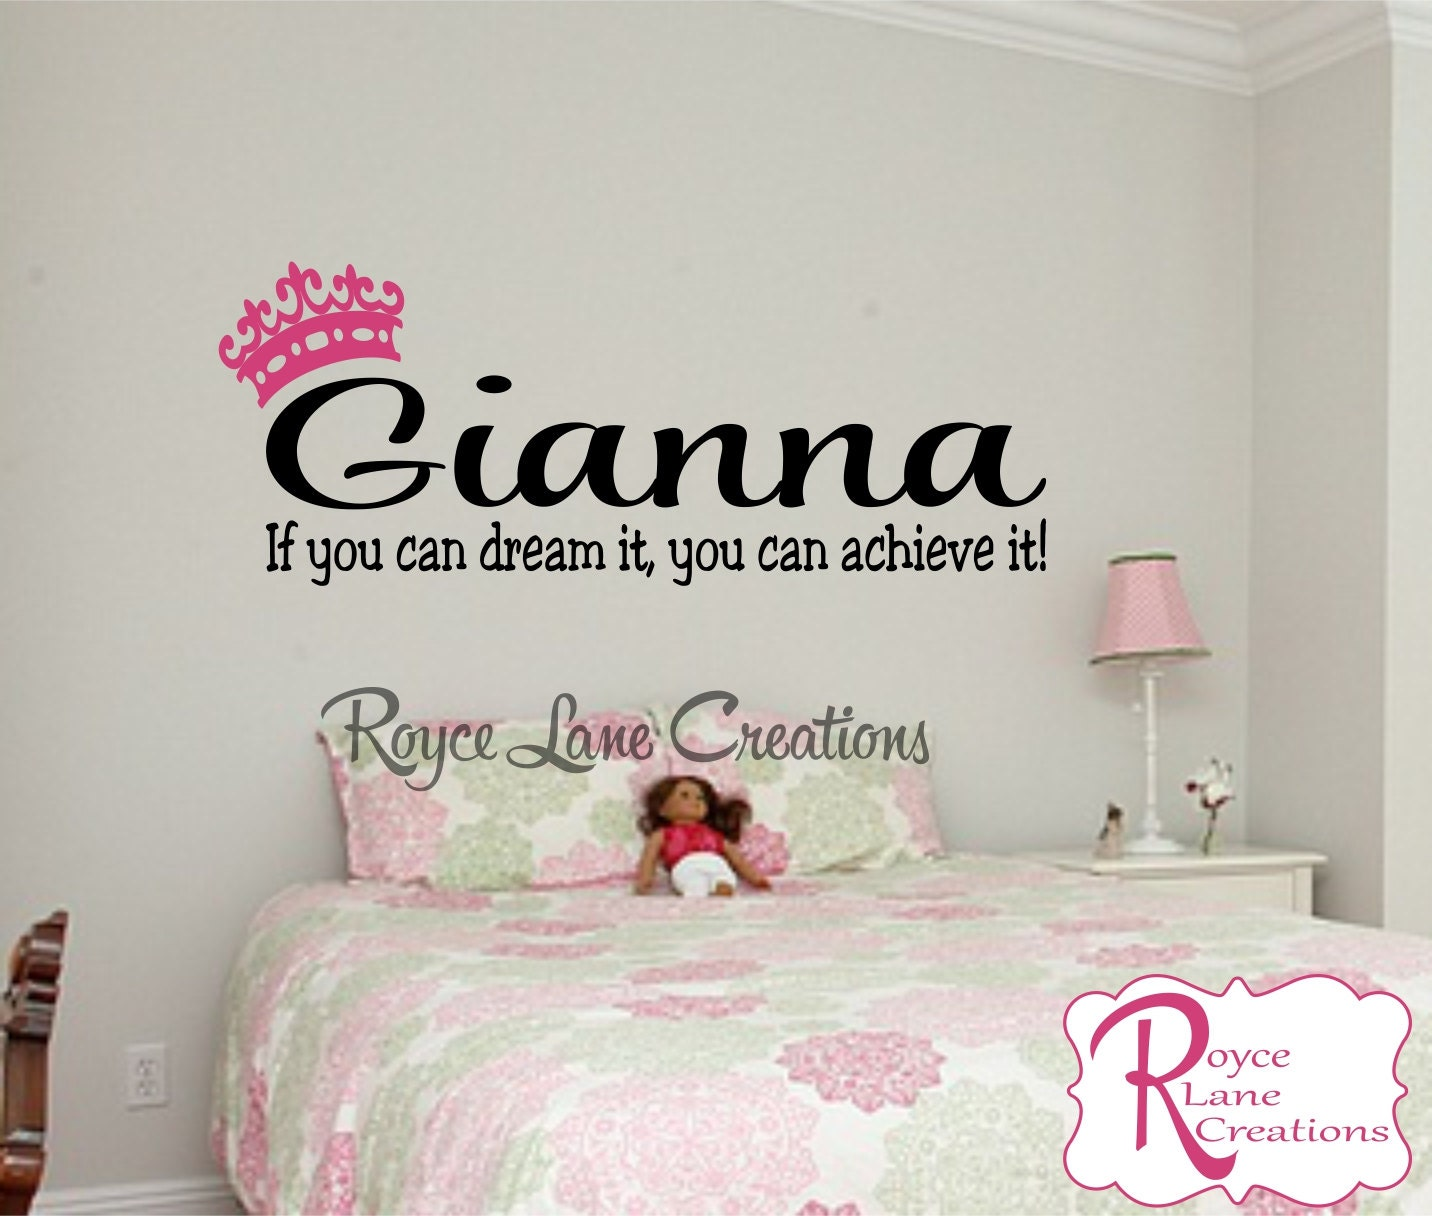 If you can dream it personalized name teen girl bedroom wall decal if you can dream it personalized name teen girl bedroom wall decal b40 bedroom wall decal bedroom decal teen girl bedroom decor amipublicfo Gallery